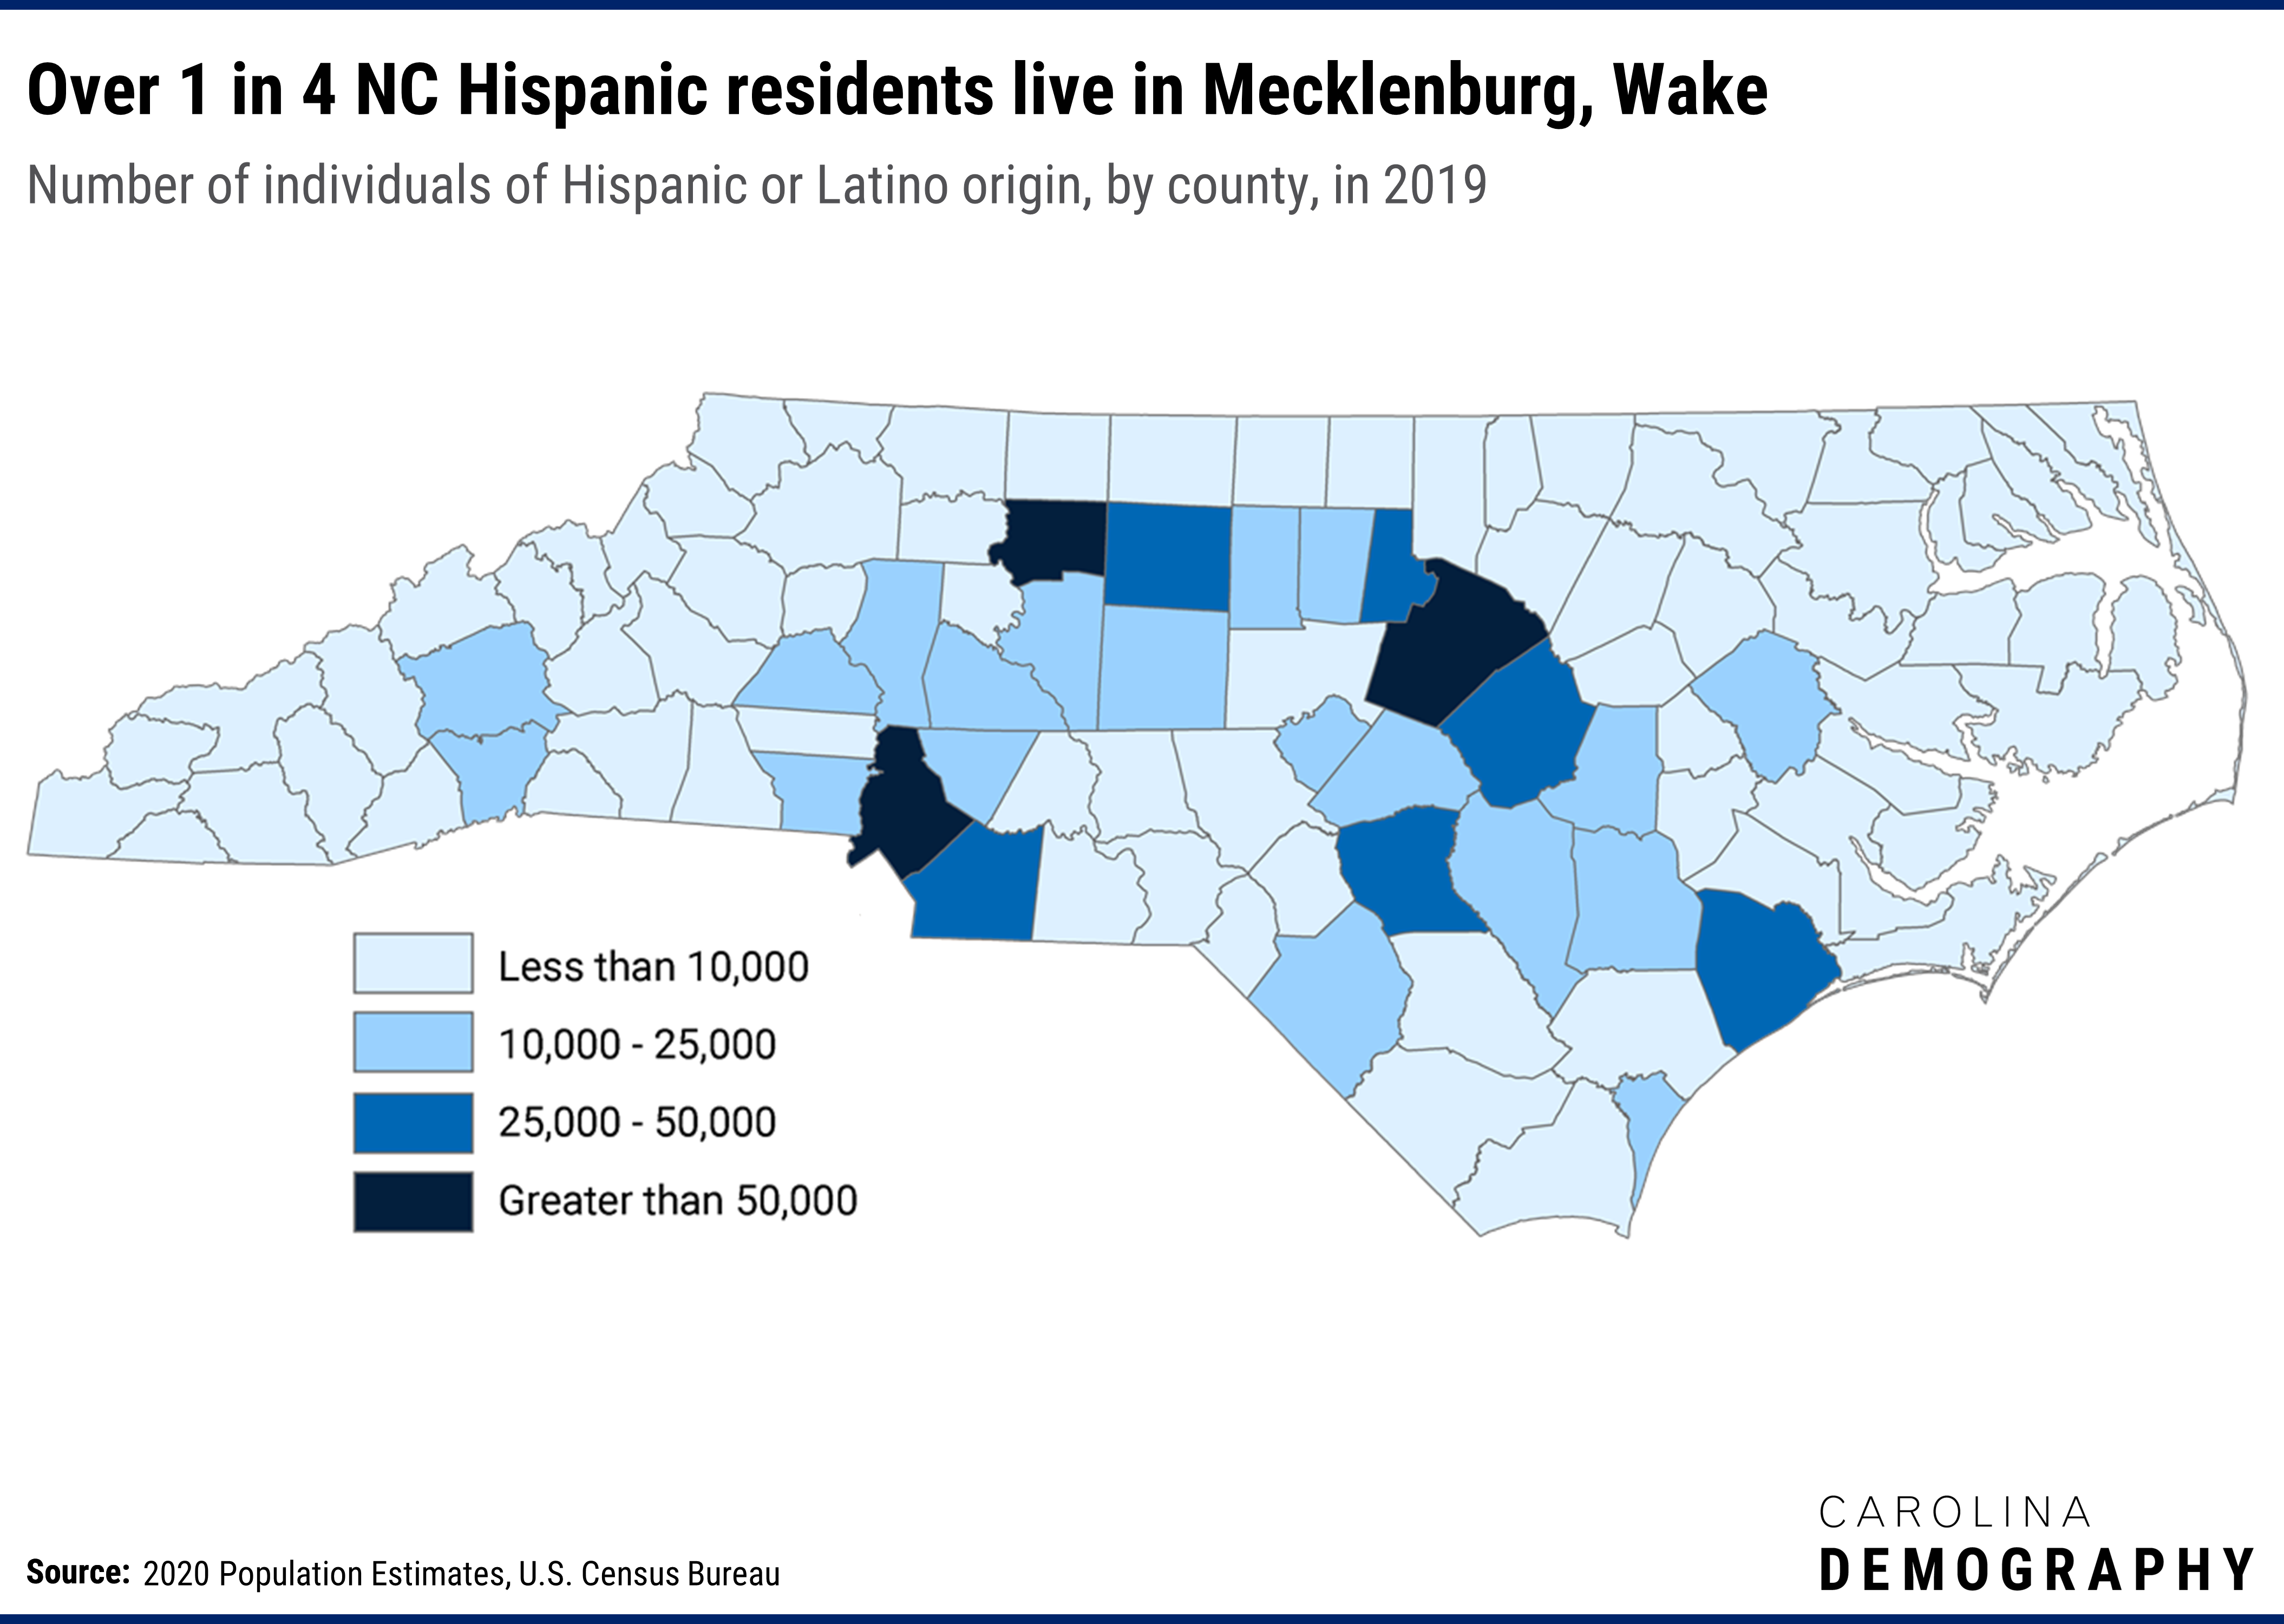 Over 1 in 4 NC Hispanic residents live in Mecklenburg, Wake. Number of individuals of Hispanic or Latino origin, by county, in 2019